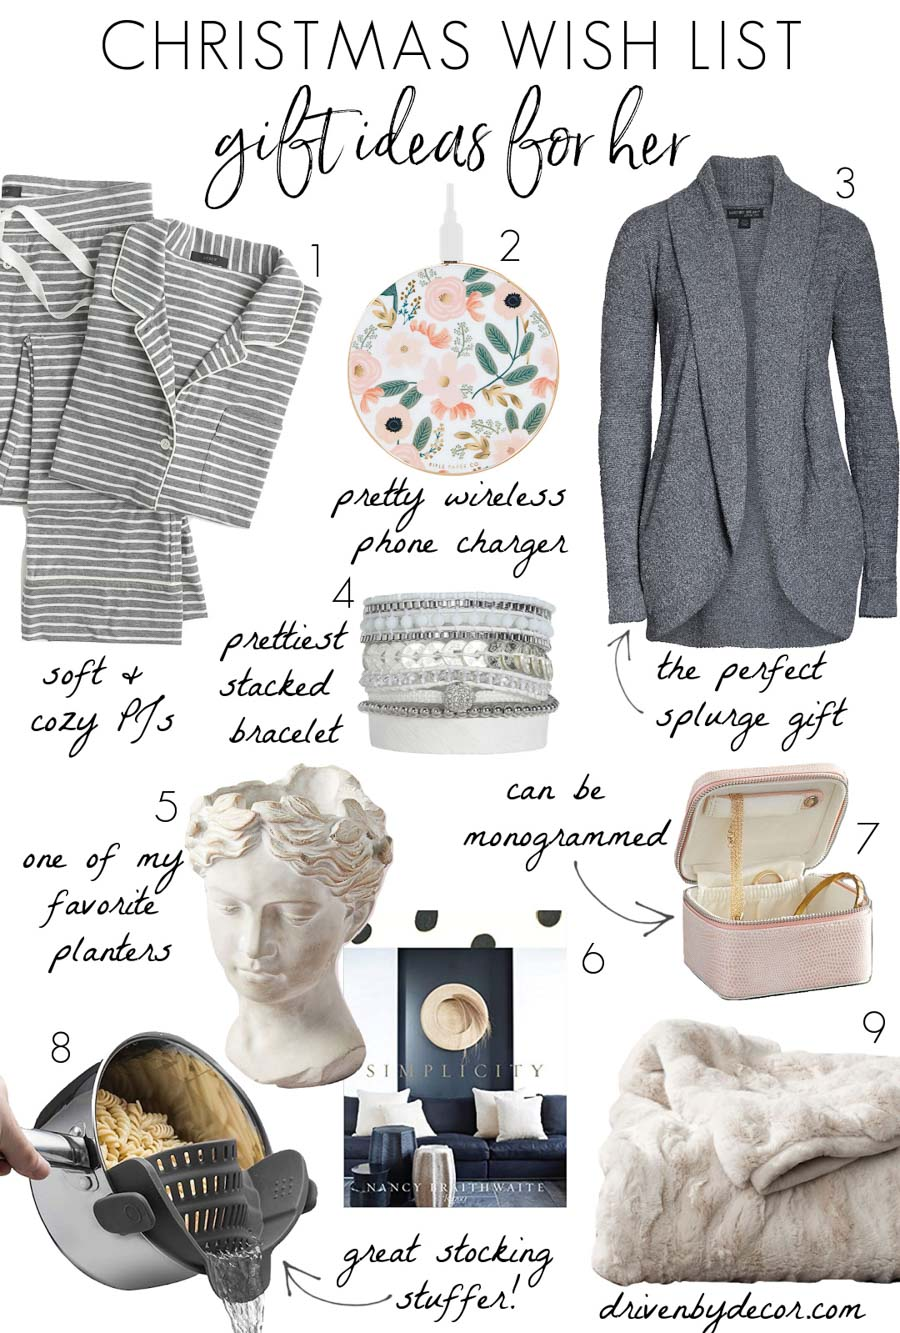 Love these Christmas wish list ideas for her - so many good ones!